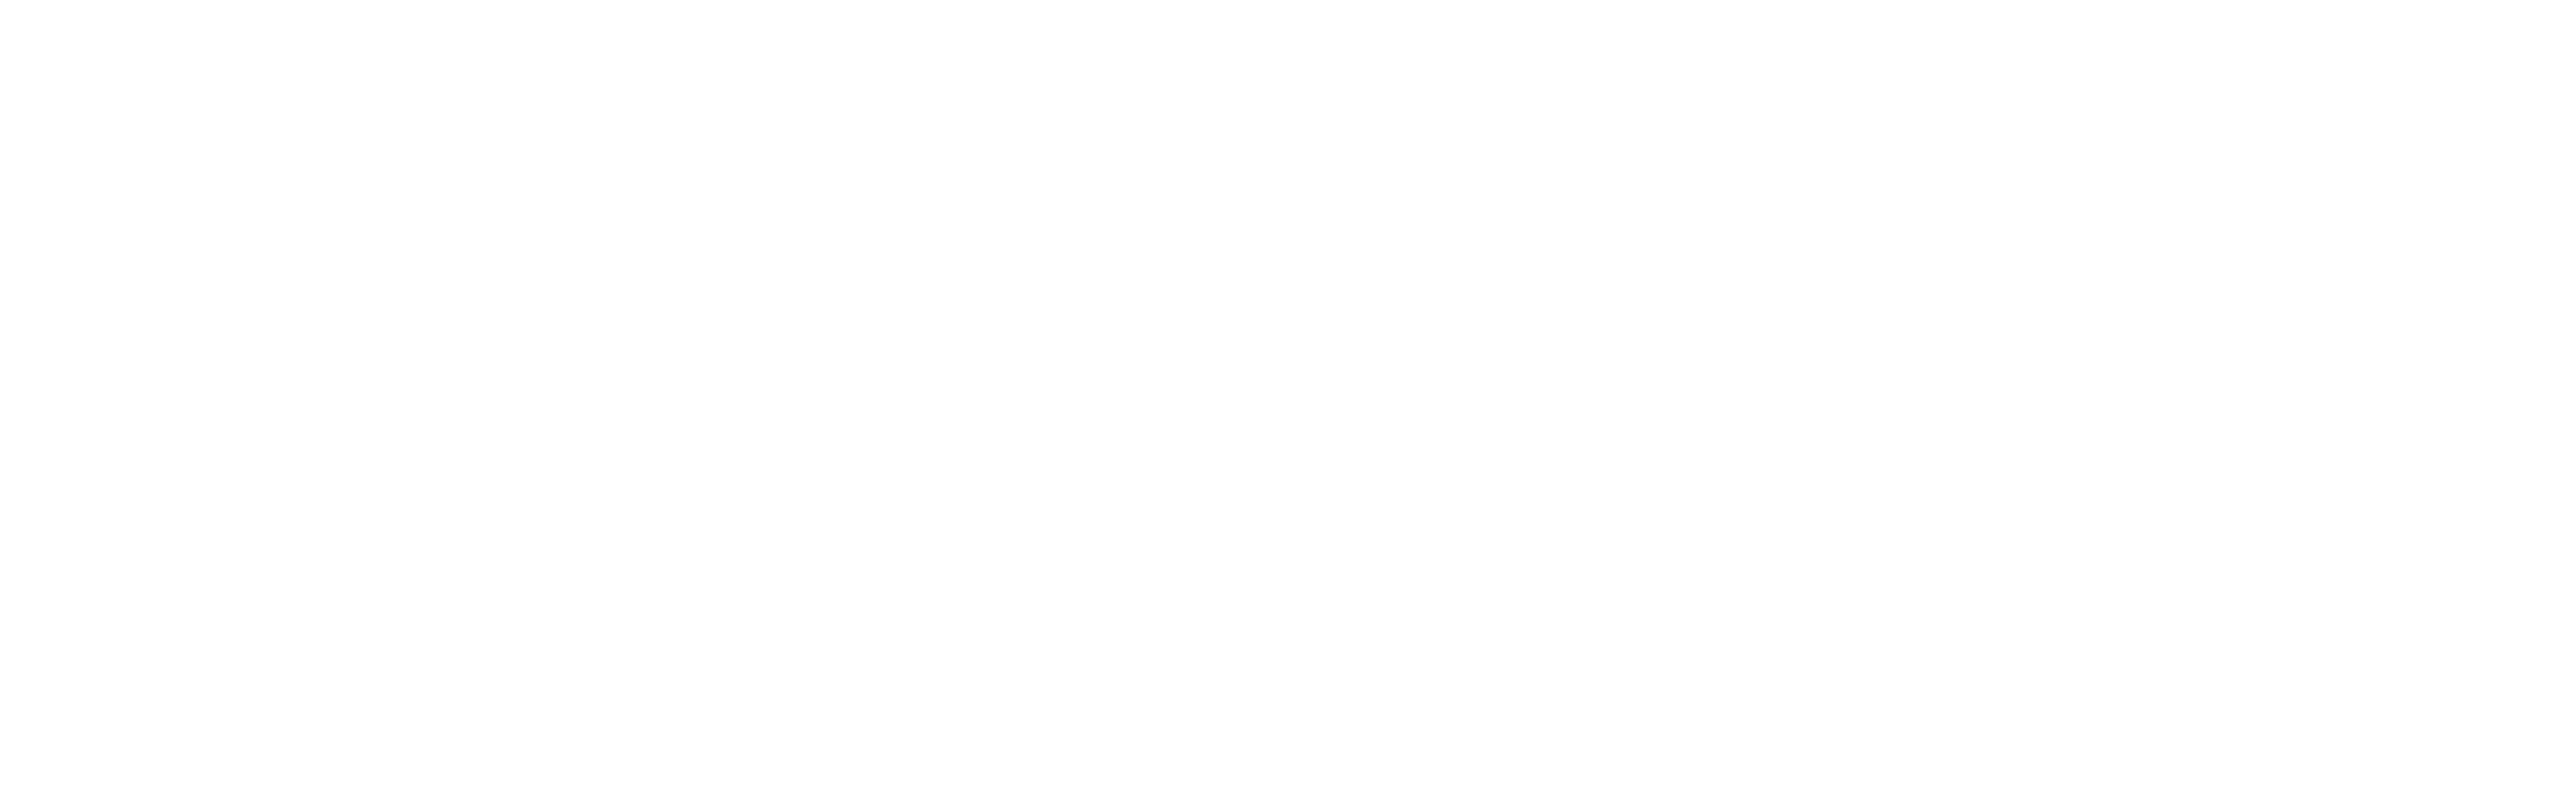 Law Office of James Clark